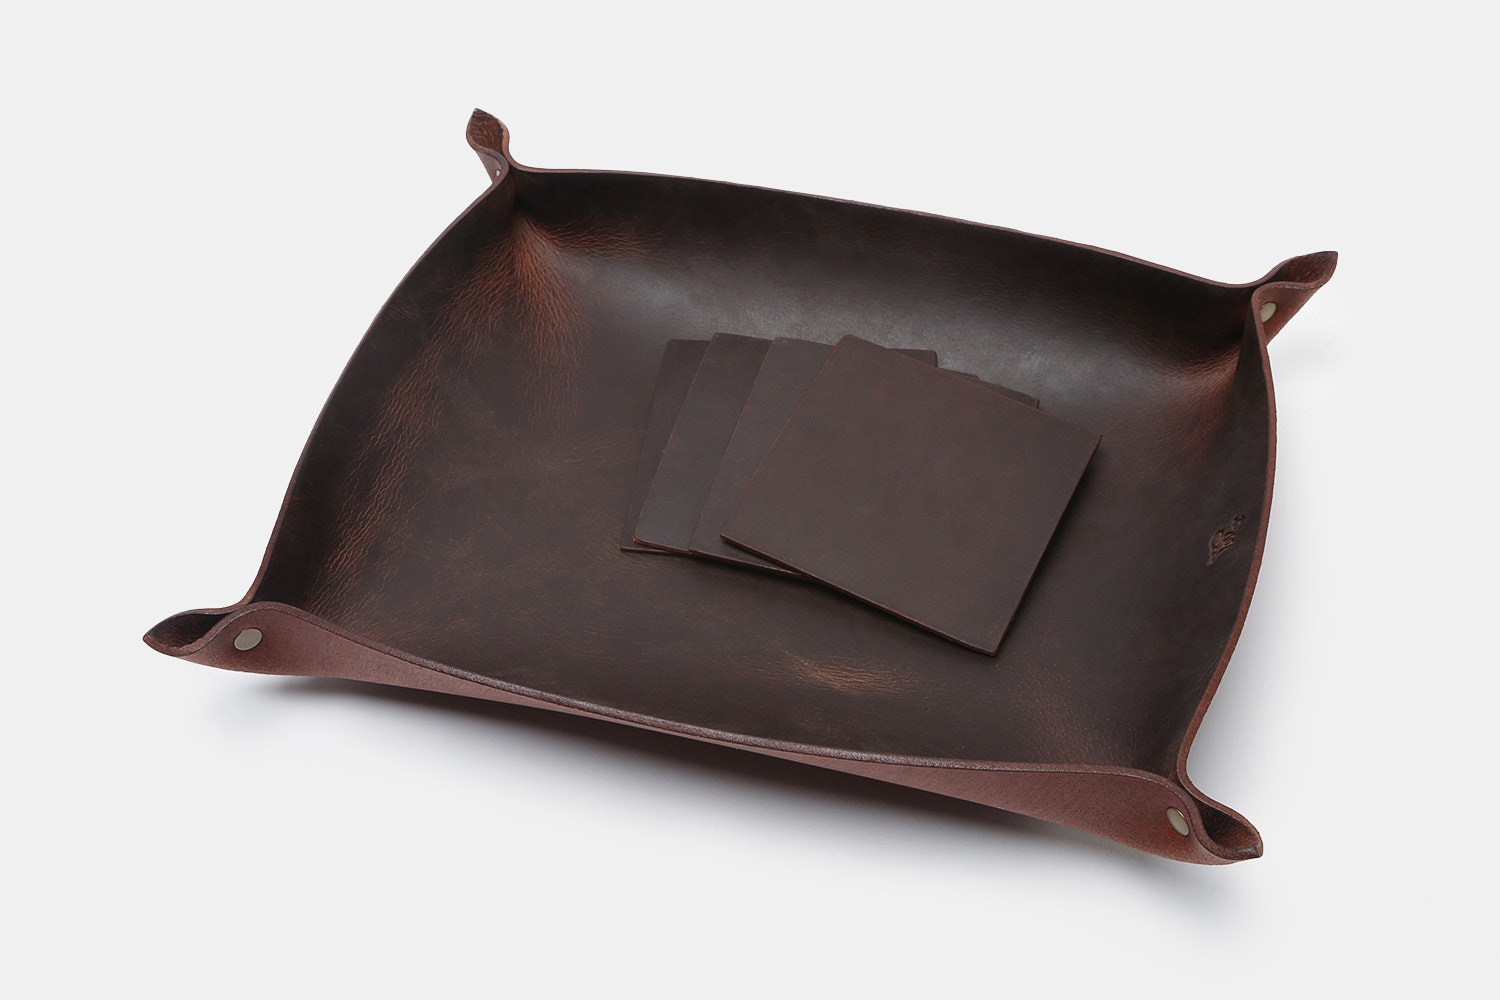 LM Products Hominy Tray & Coasters